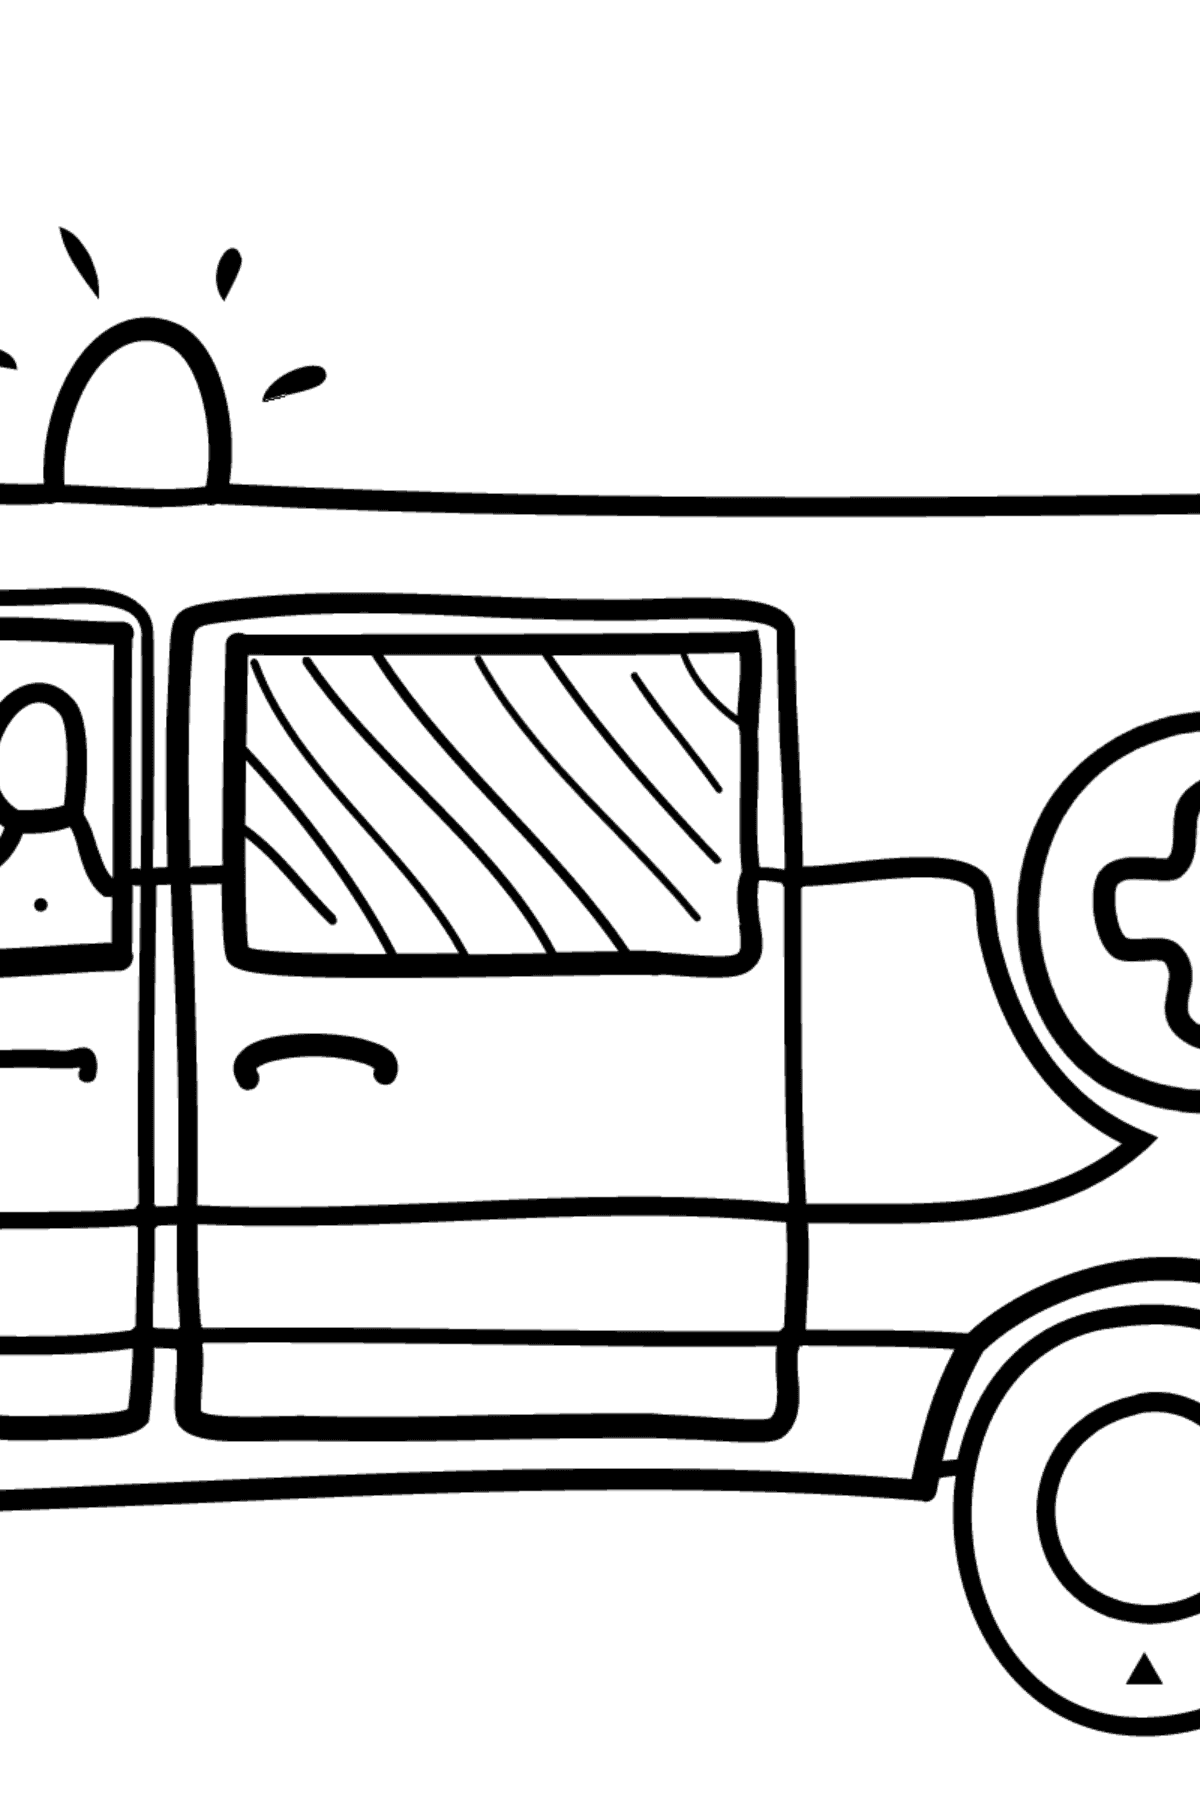 Coloring Page - An Ambulance for Kids  - Color by Special Symbols